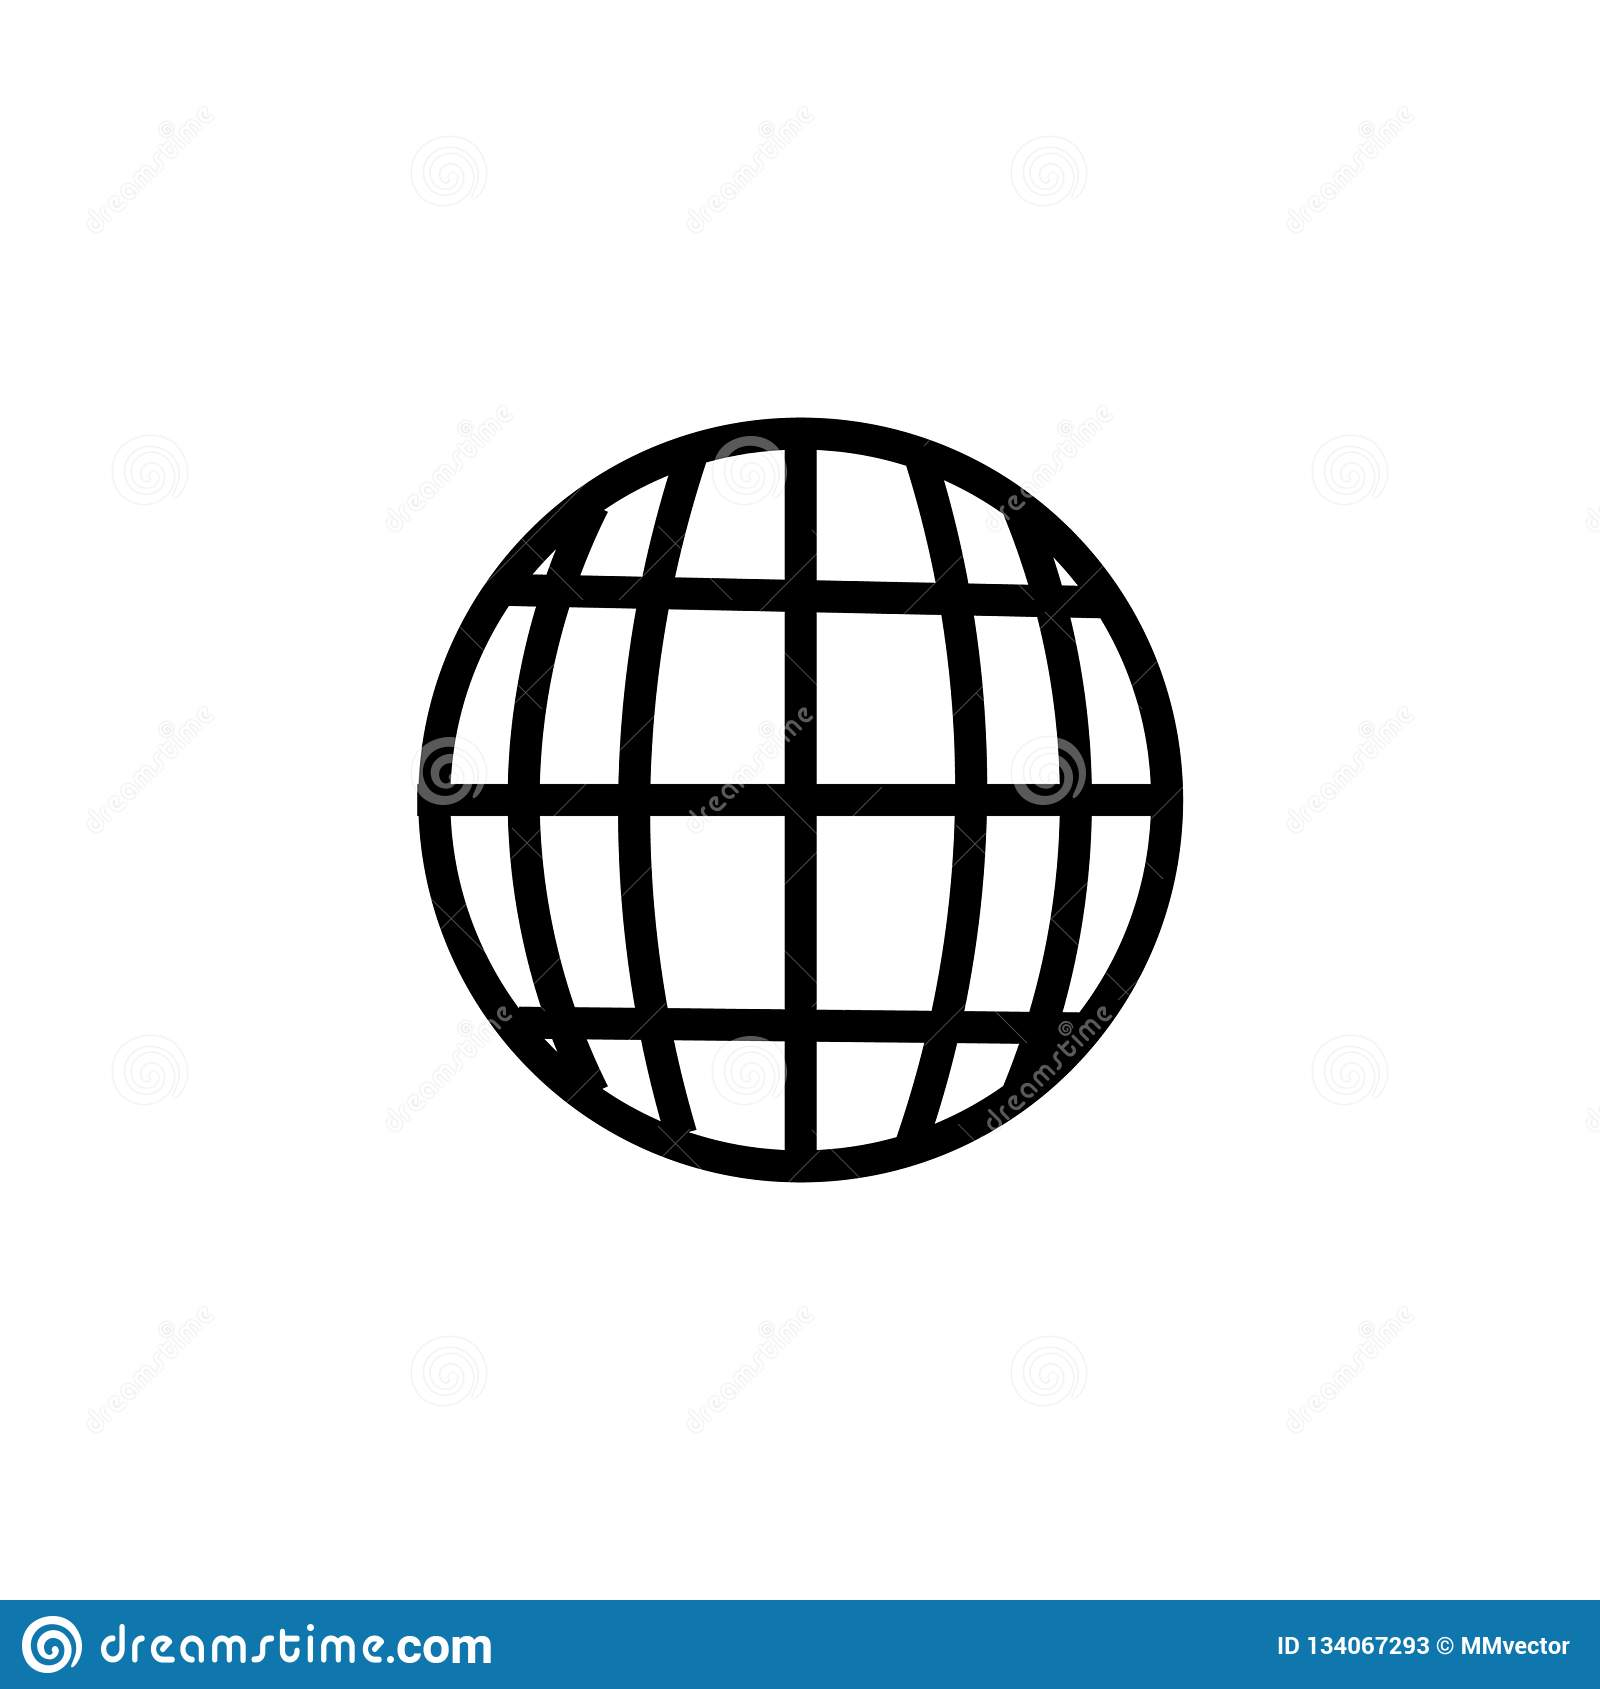 Grid world icon vector sign and symbol isolated on white background, Grid world logo concept